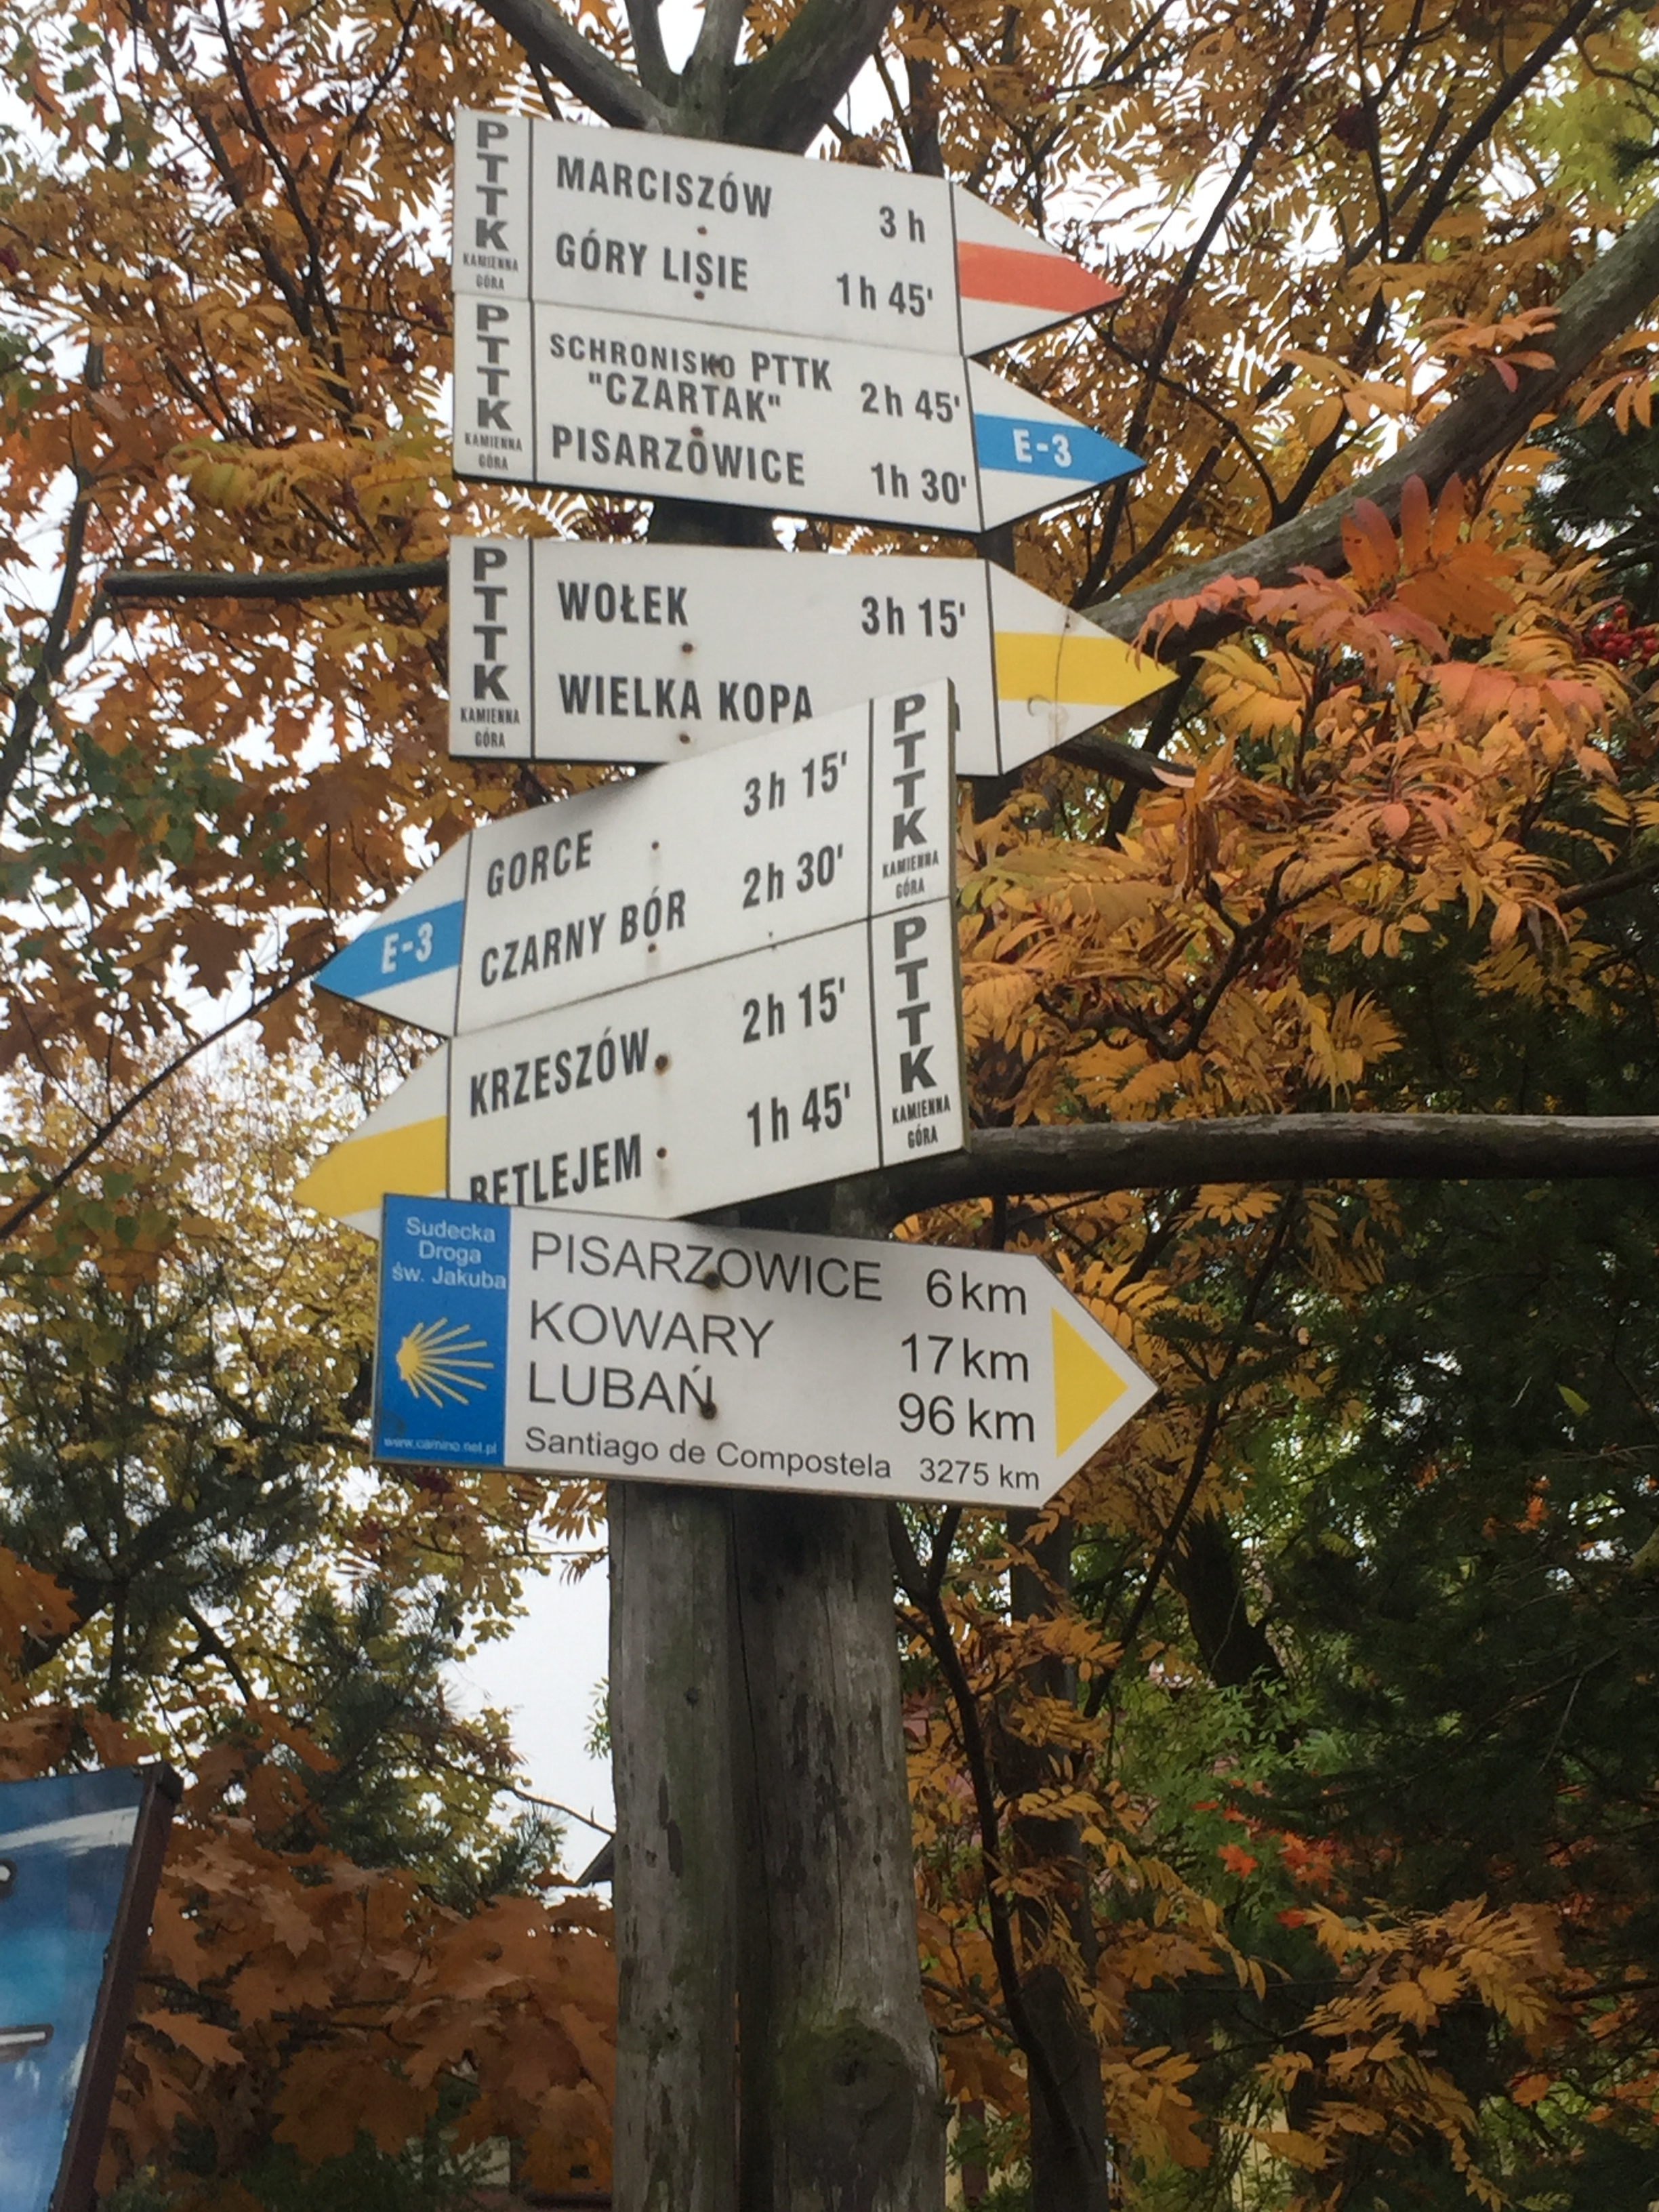 Signs from the Polish hiking group PTTK.